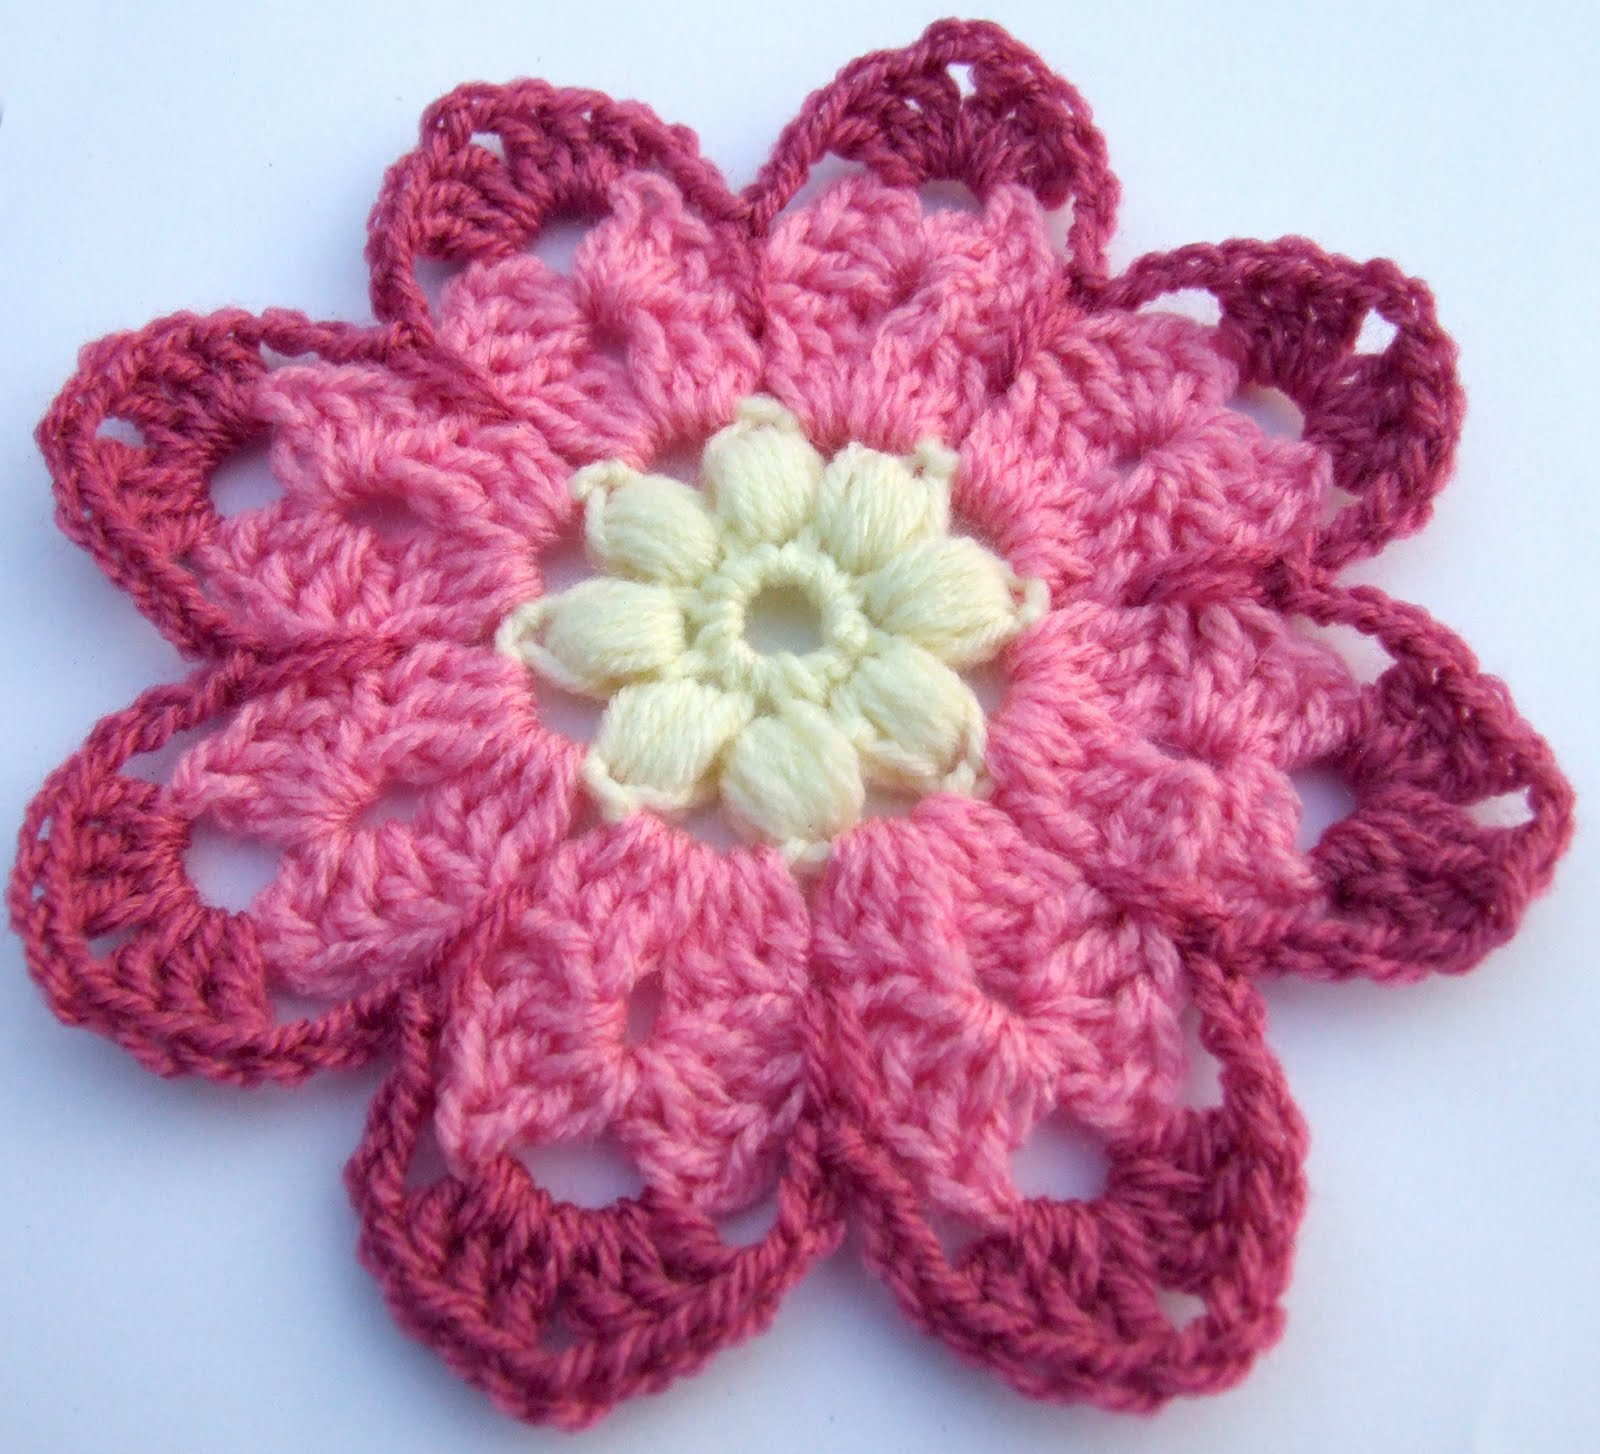 All Crochet Free Patterns : Free Crochet Pattern - Octagon Flower - leonie morgan